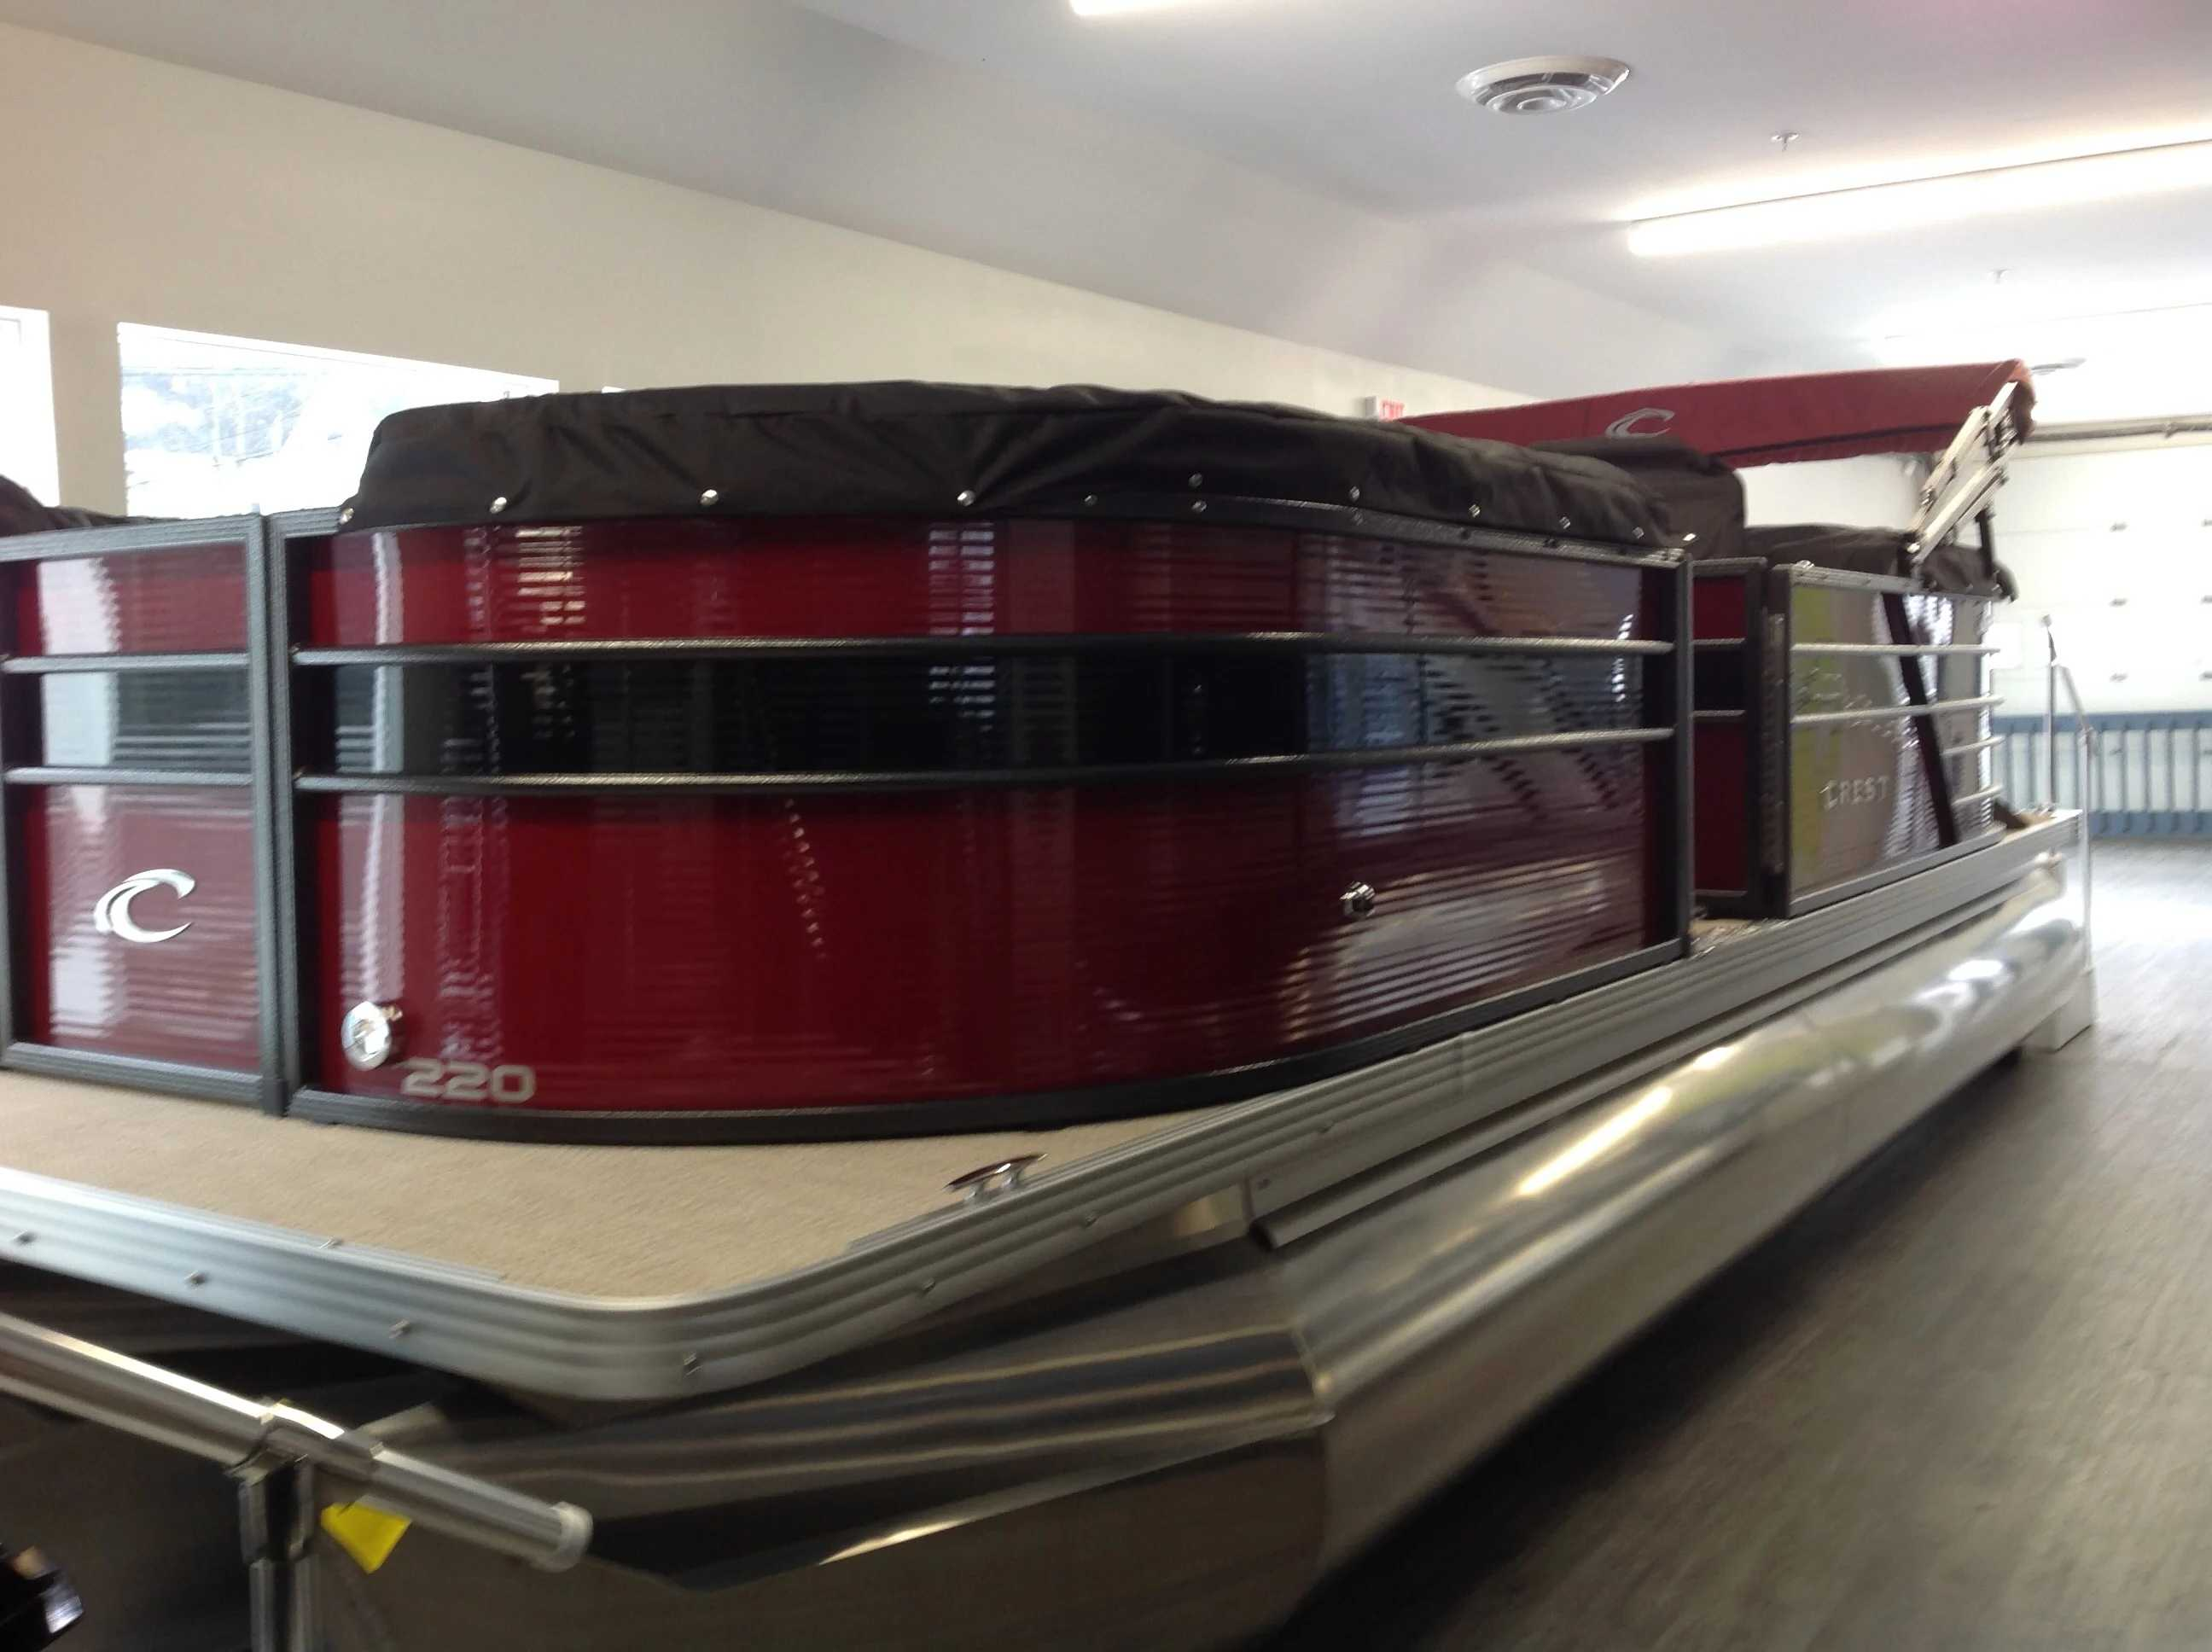 2021 Crest boat for sale, model of the boat is Cl Dlx 220slc & Image # 3 of 15